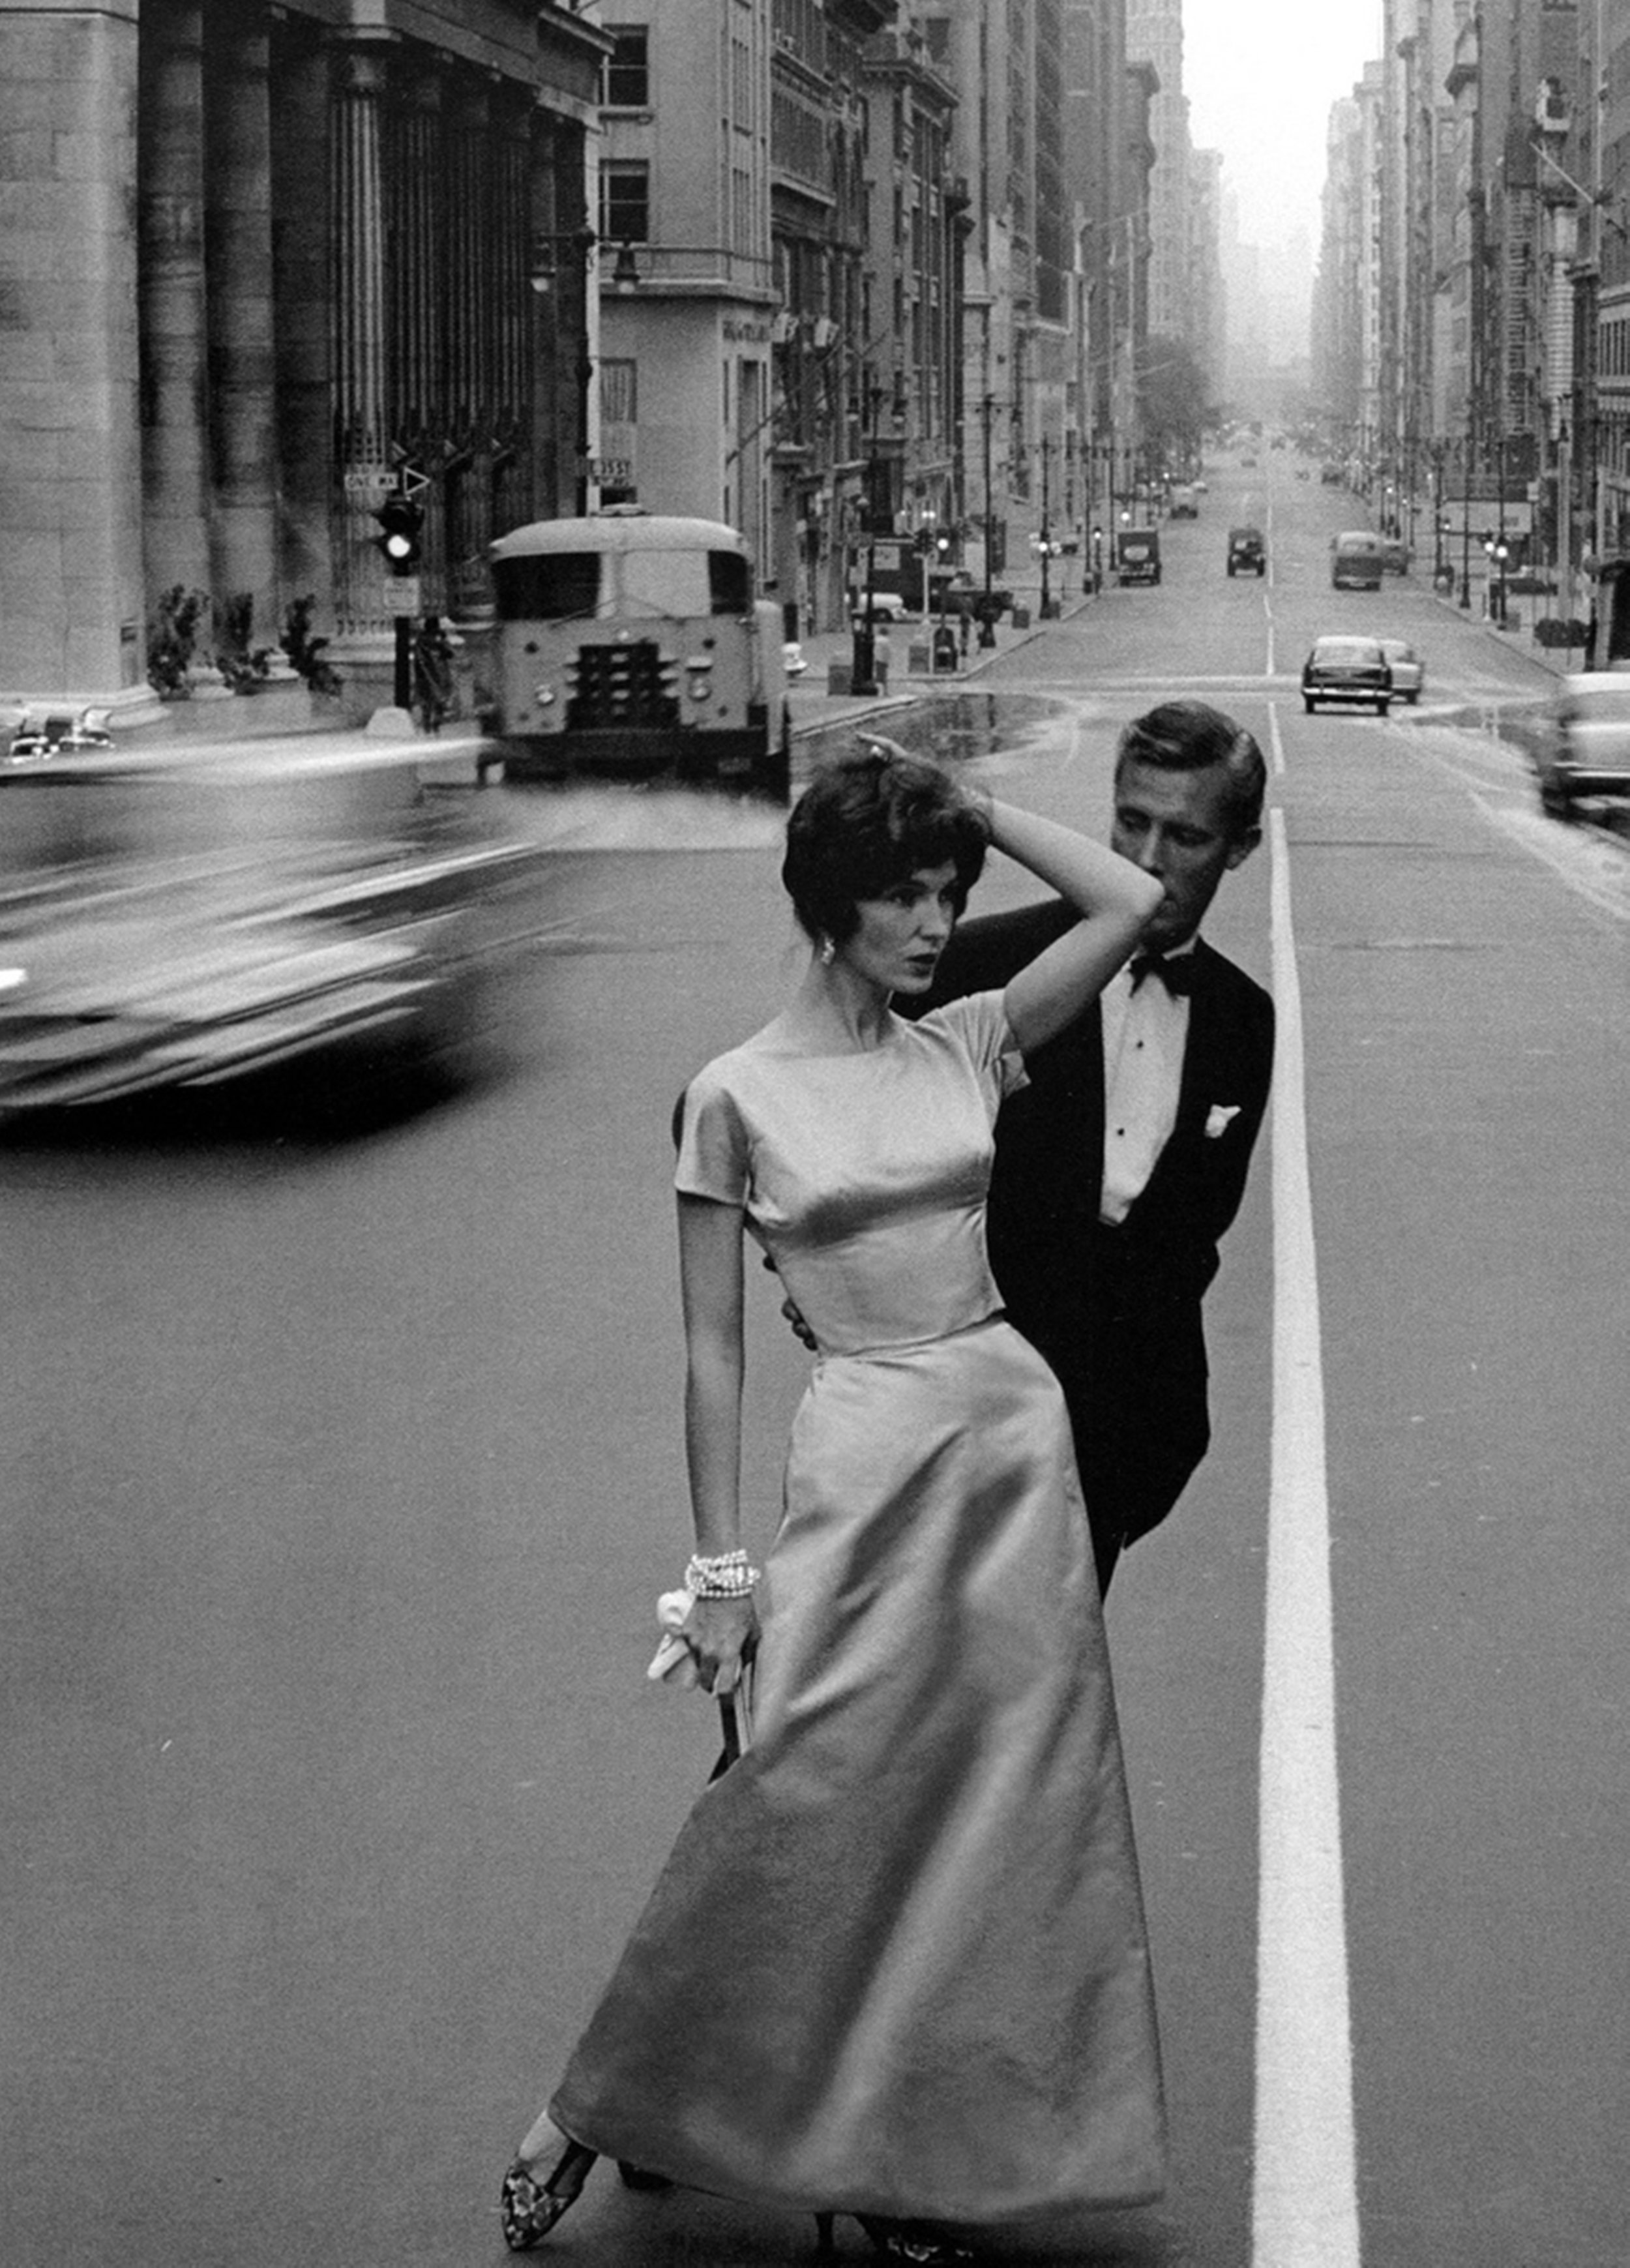 Joanna McCormick and Colin Fox photographed by Jerry Schatzberg in New York, 1958.